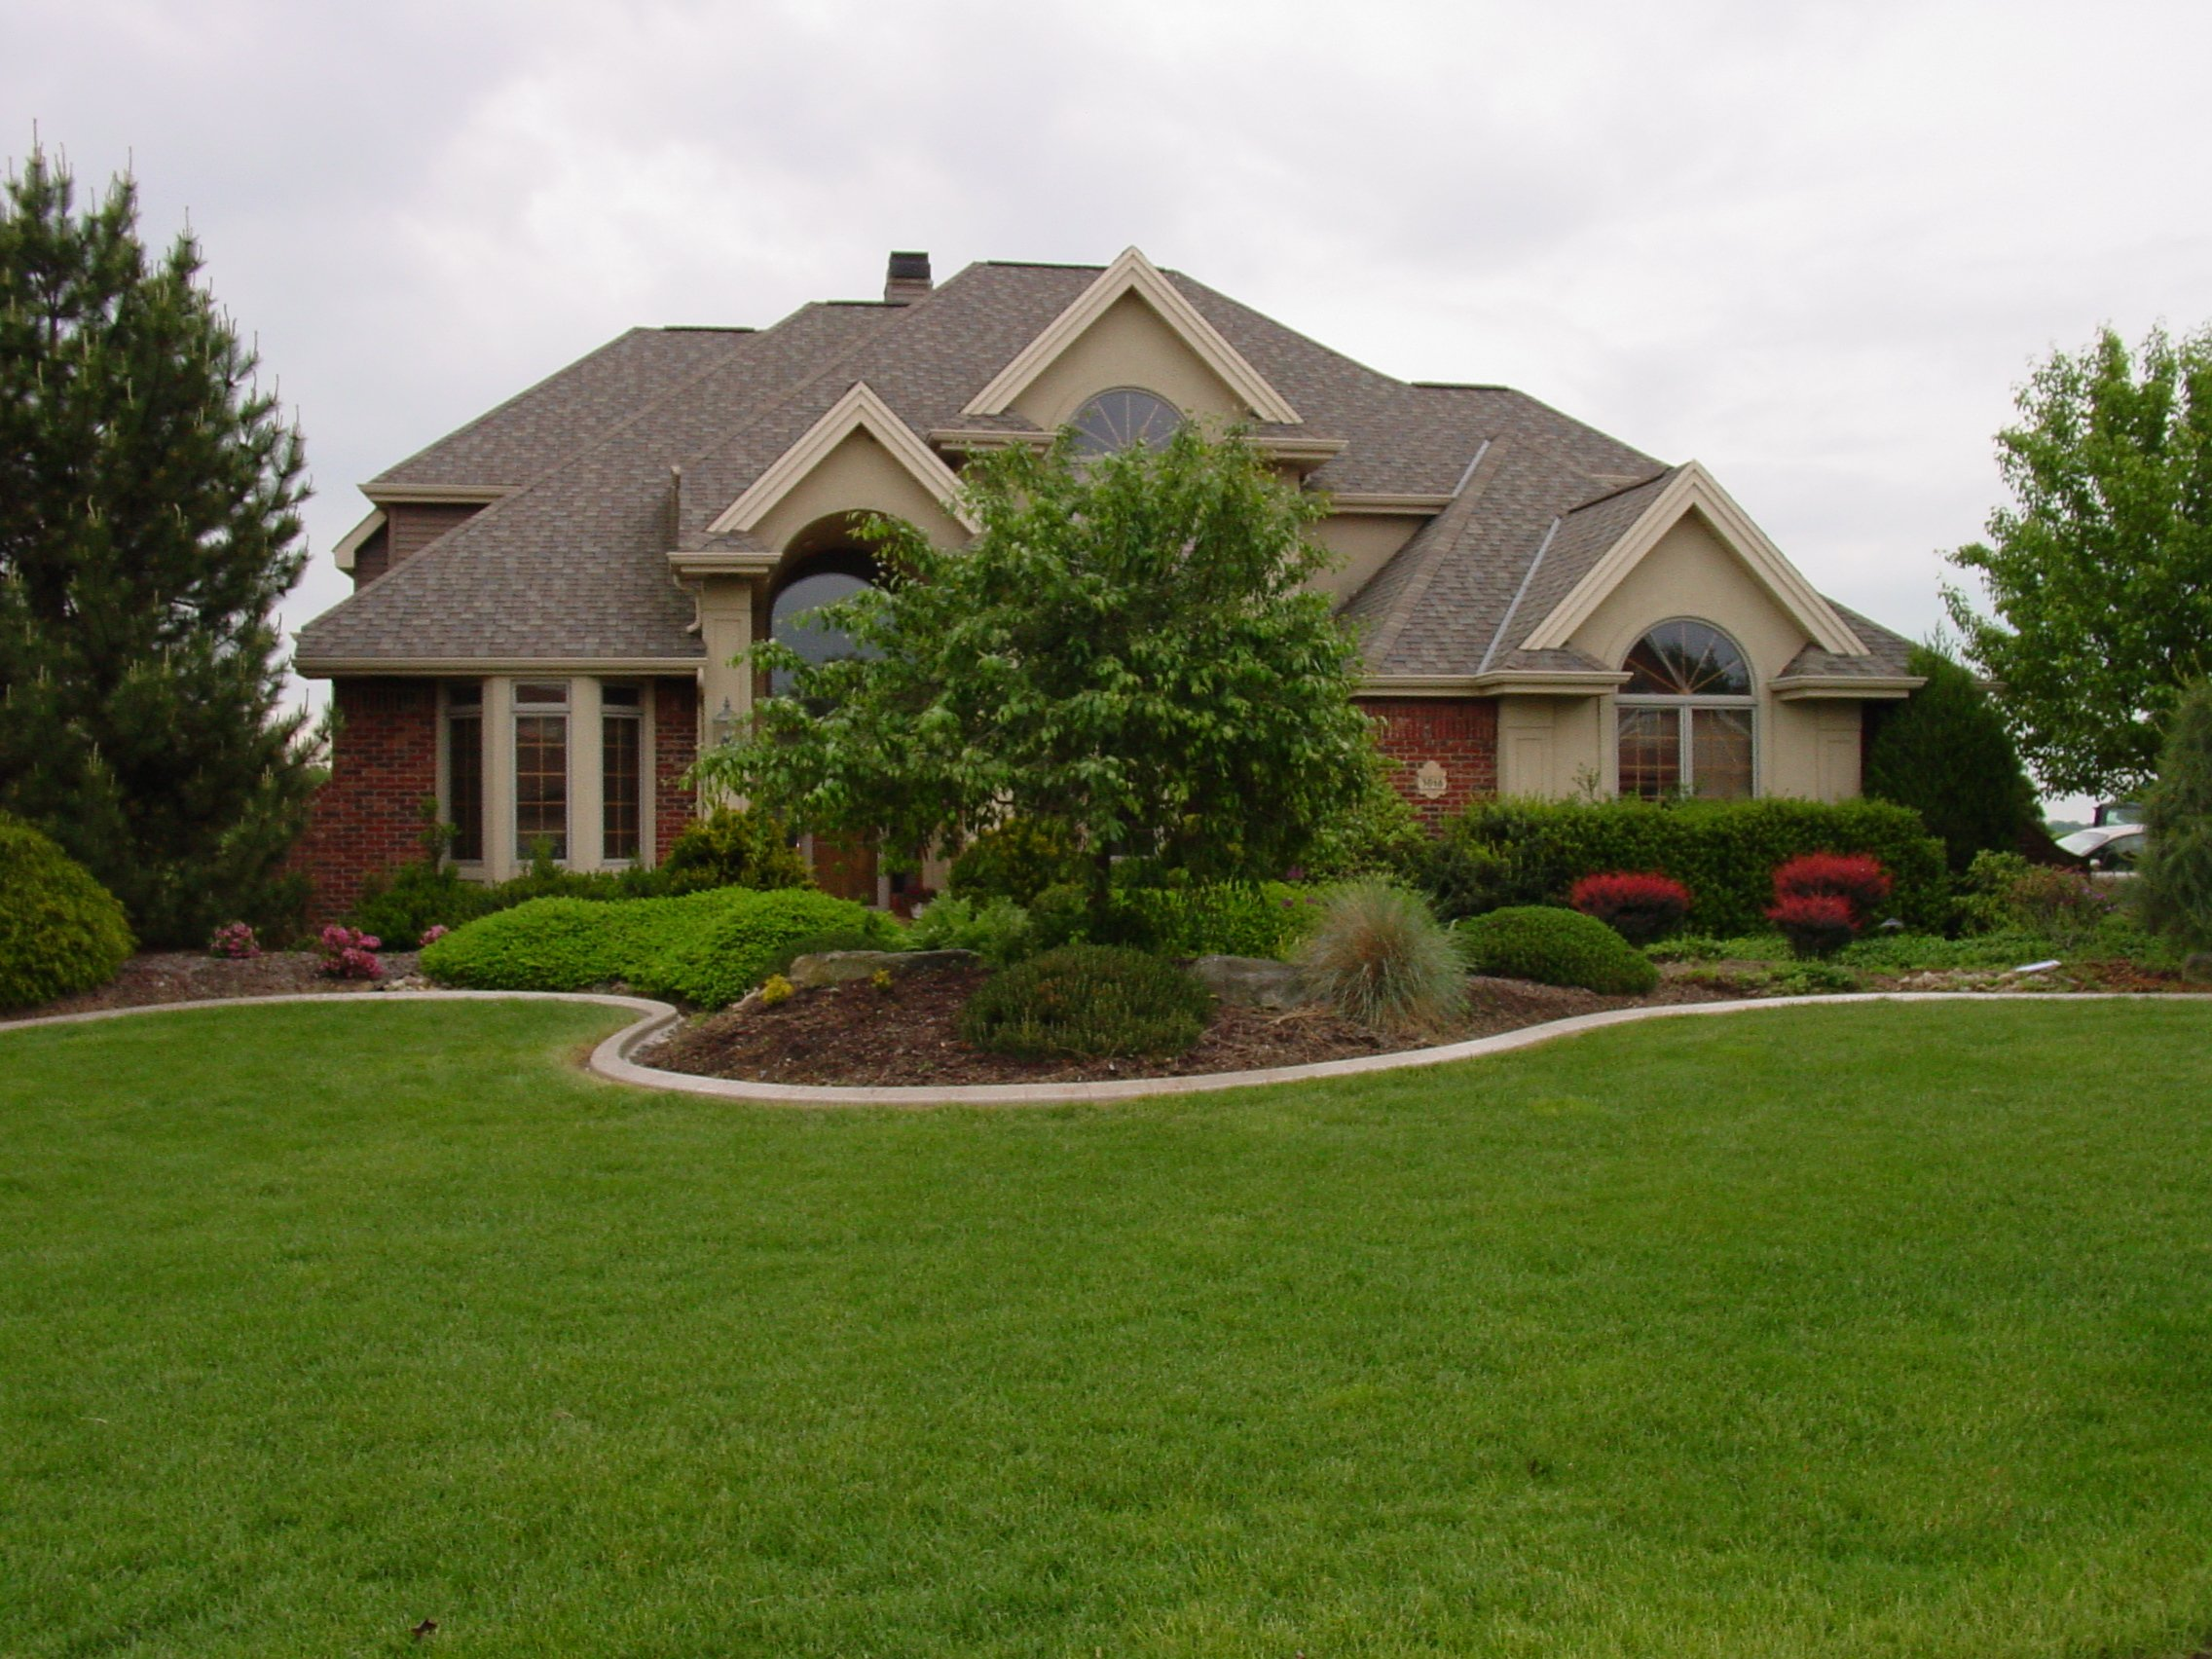 2014 fall landscaping trends in florida curb appeal for House landscape